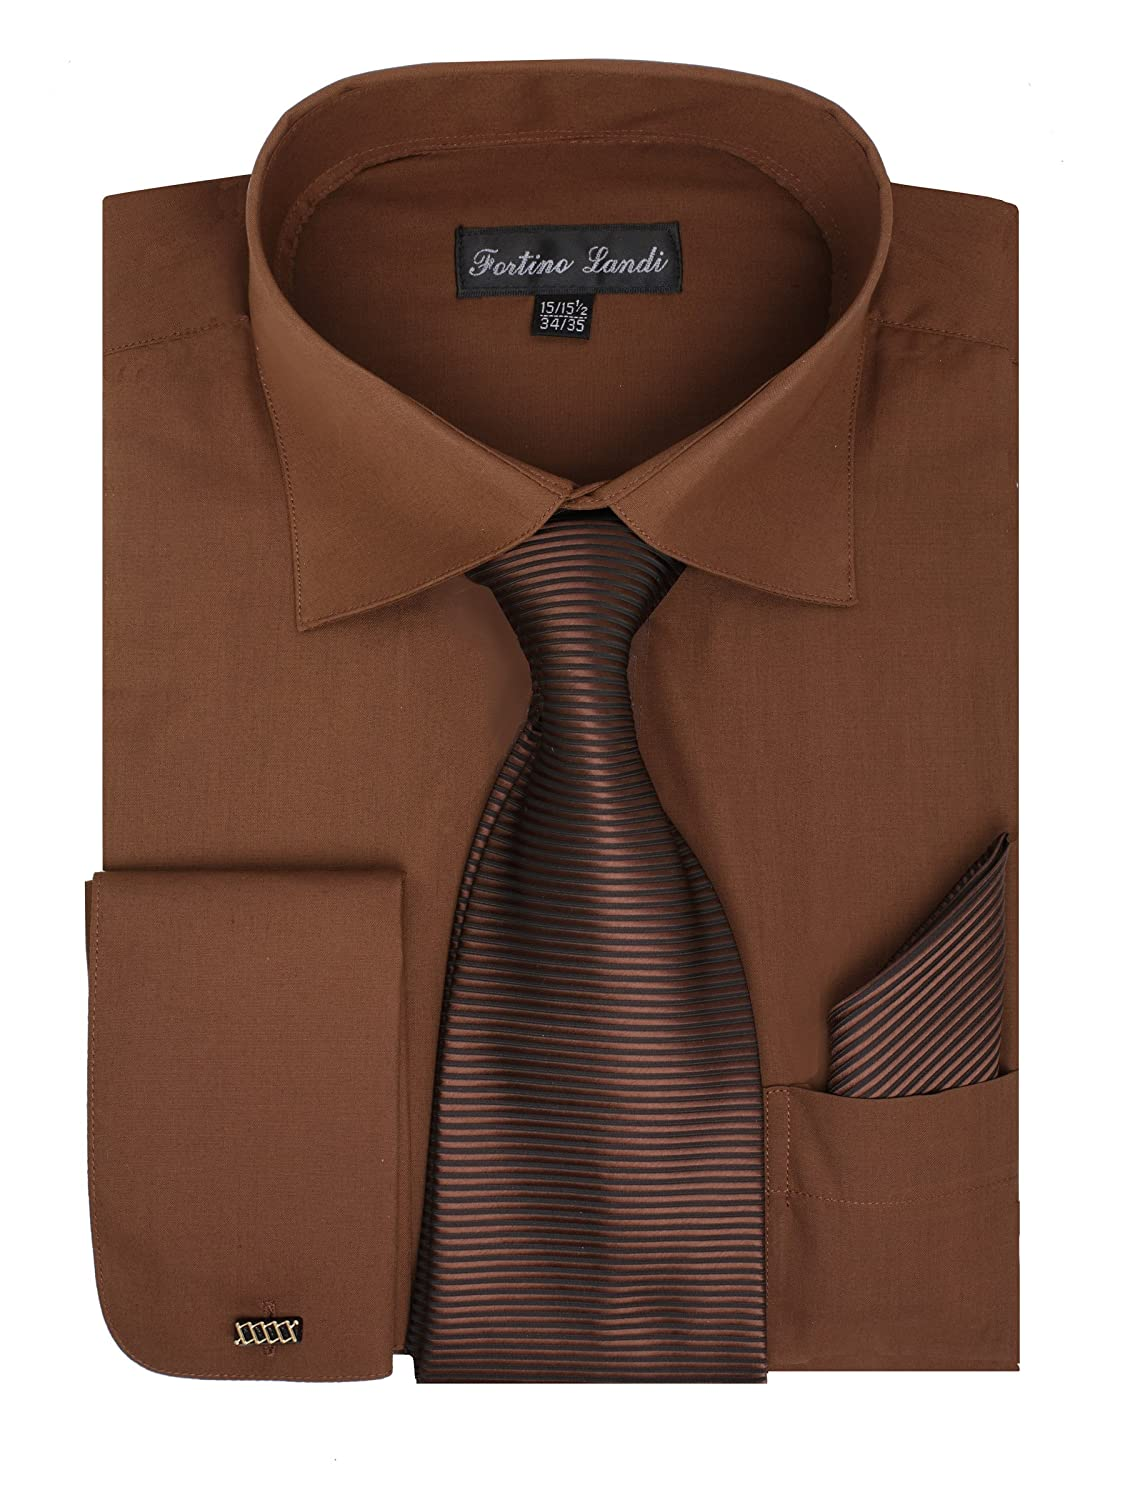 2a1dd4831df4 Kohls Dress Shirts With Ties – EDGE Engineering and Consulting Limited